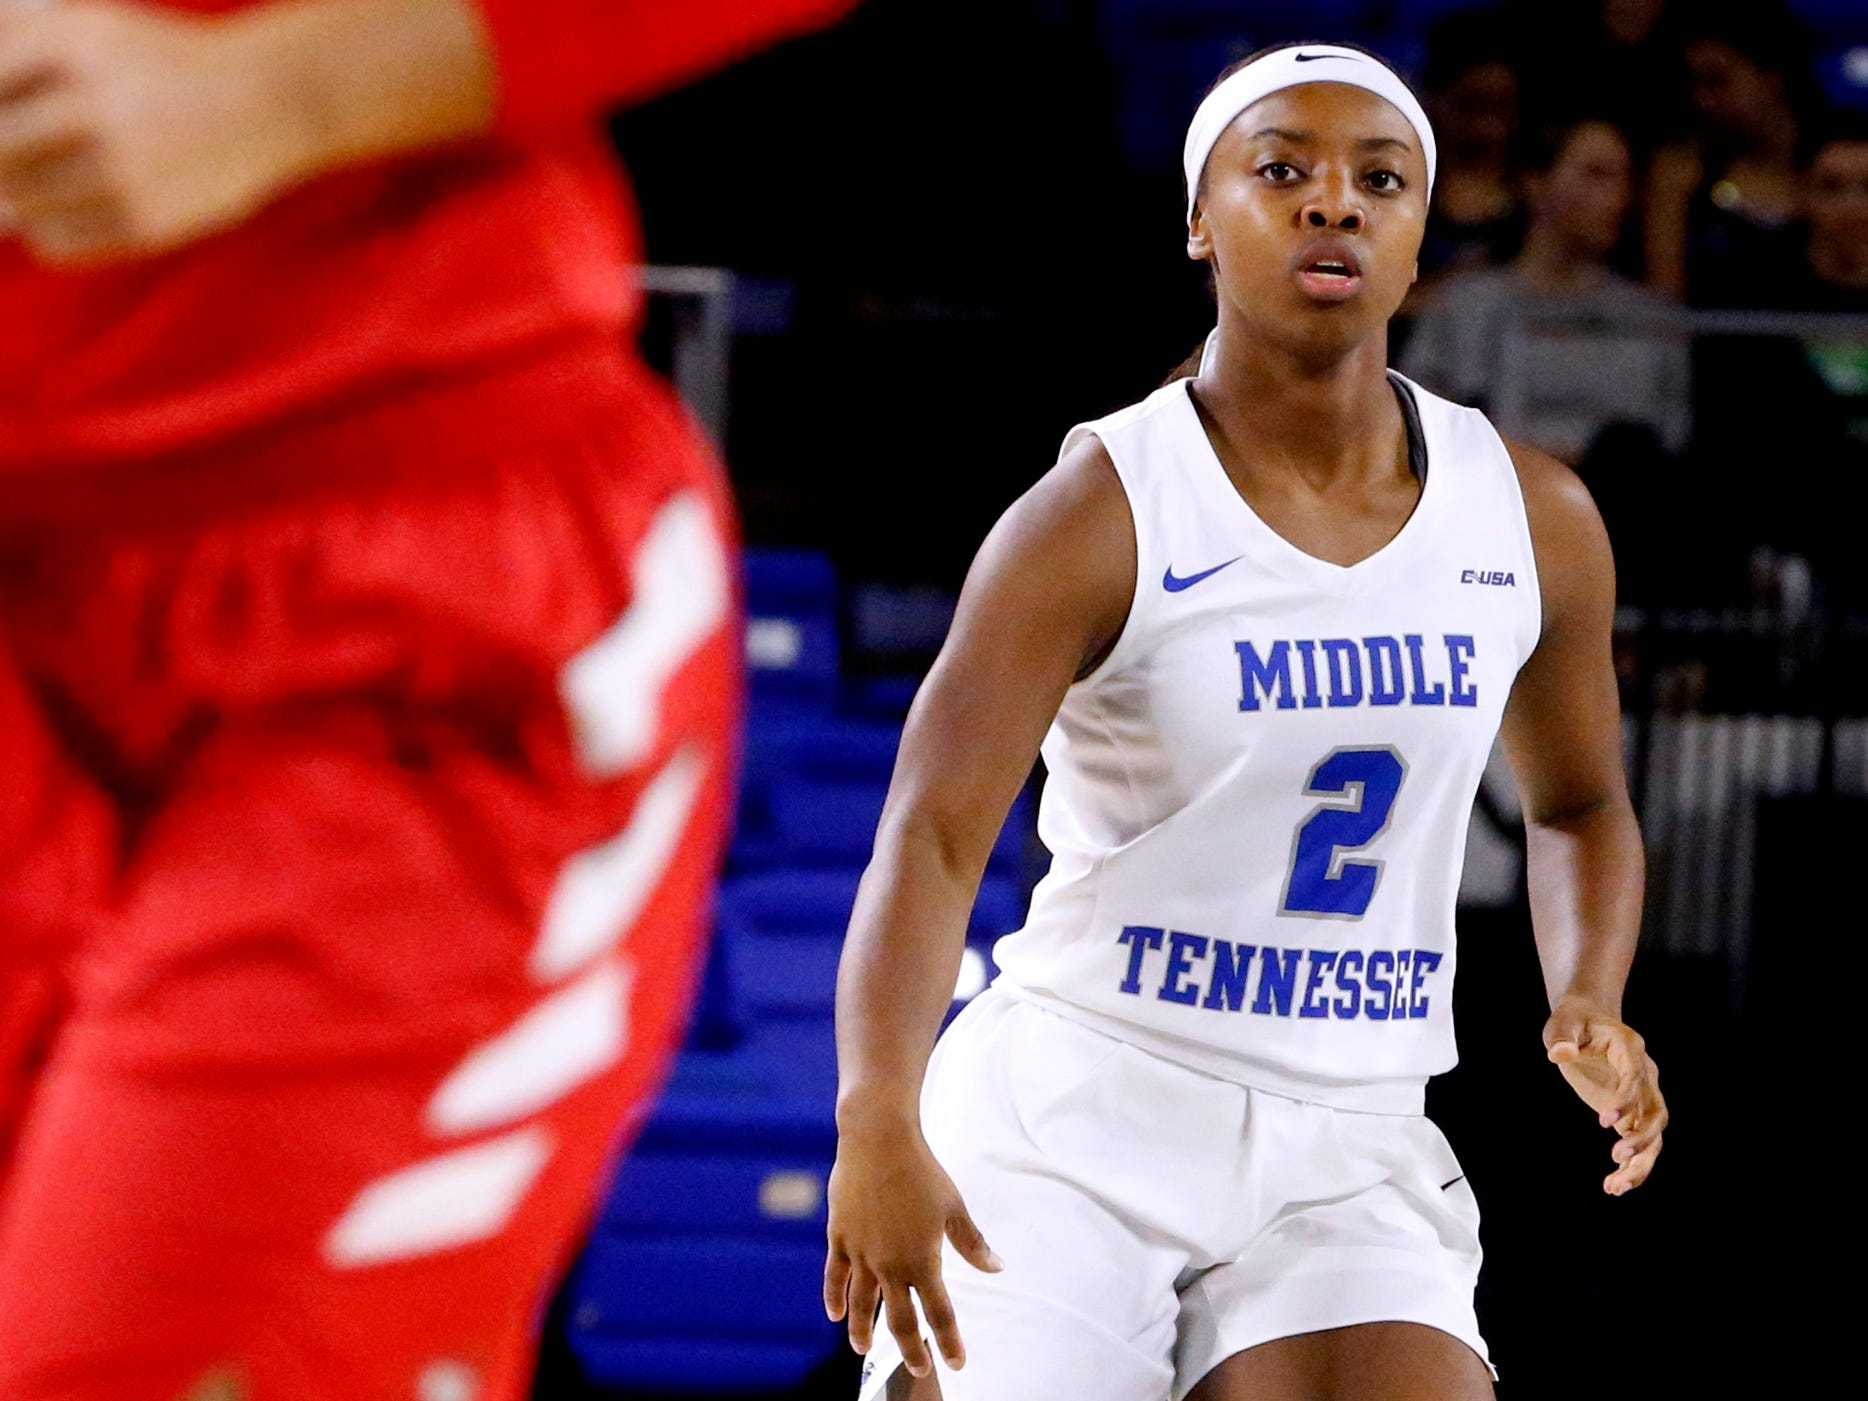 MTSU's guard Taylor Sutton (2) brings the ball down the court during the game against Western on Thursday, Feb. 14, 2019.